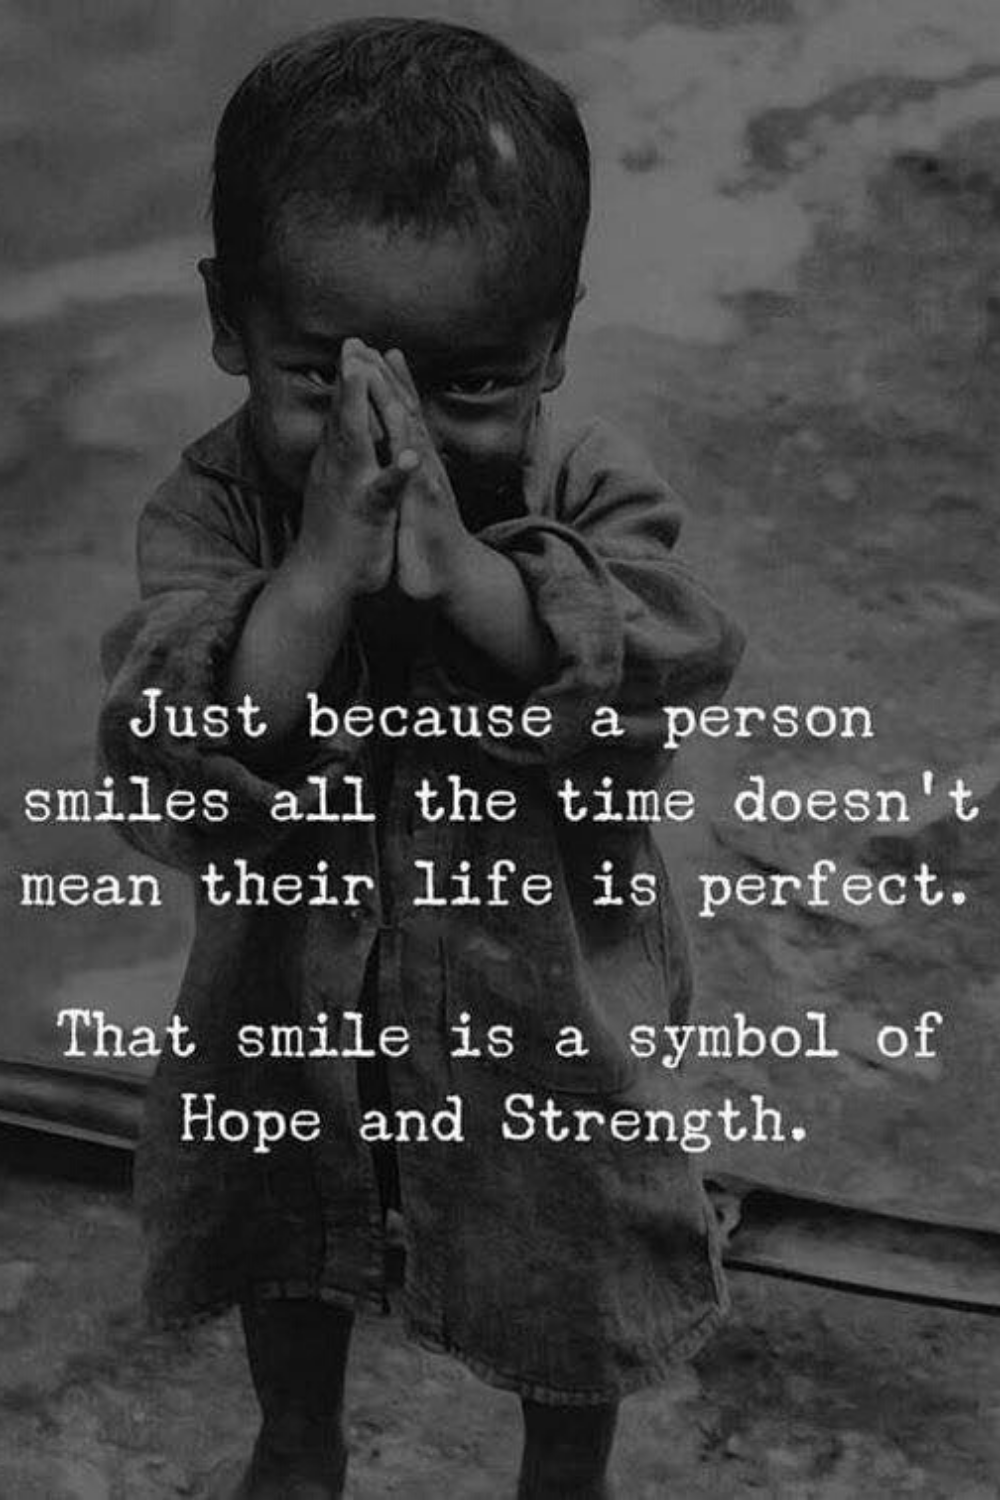 Hope And Strength 💜🙏